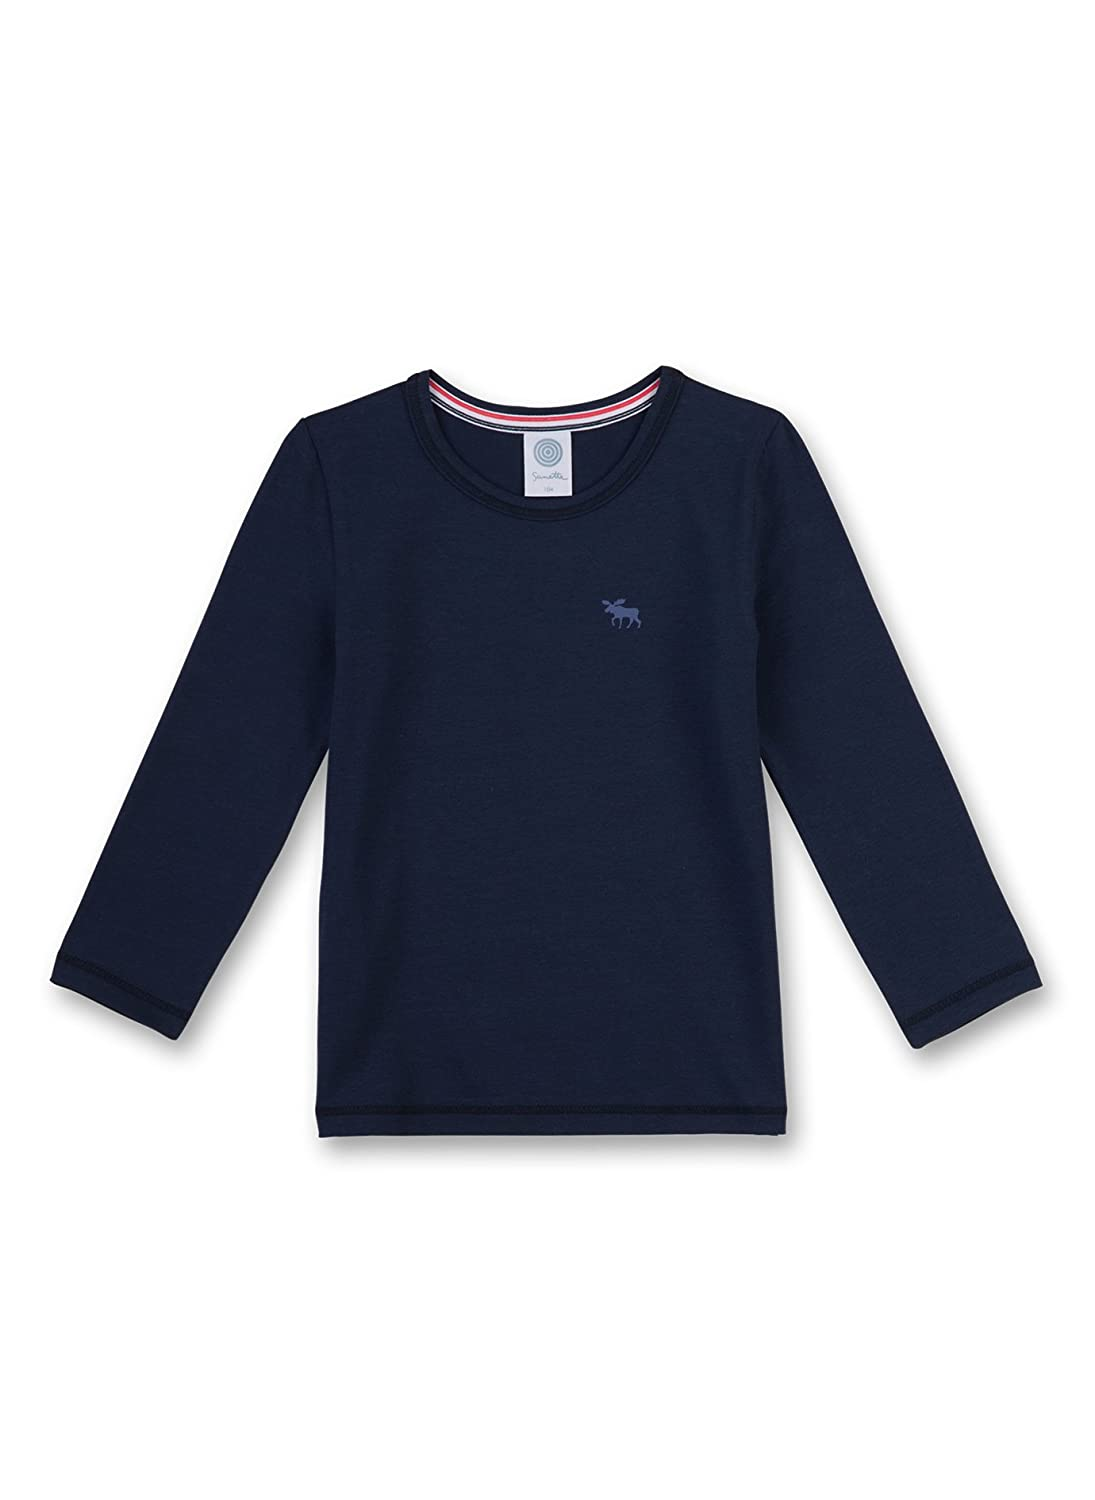 Sanetta Boy's Thermal Top Sanetta Boy's Thermal Top 333753